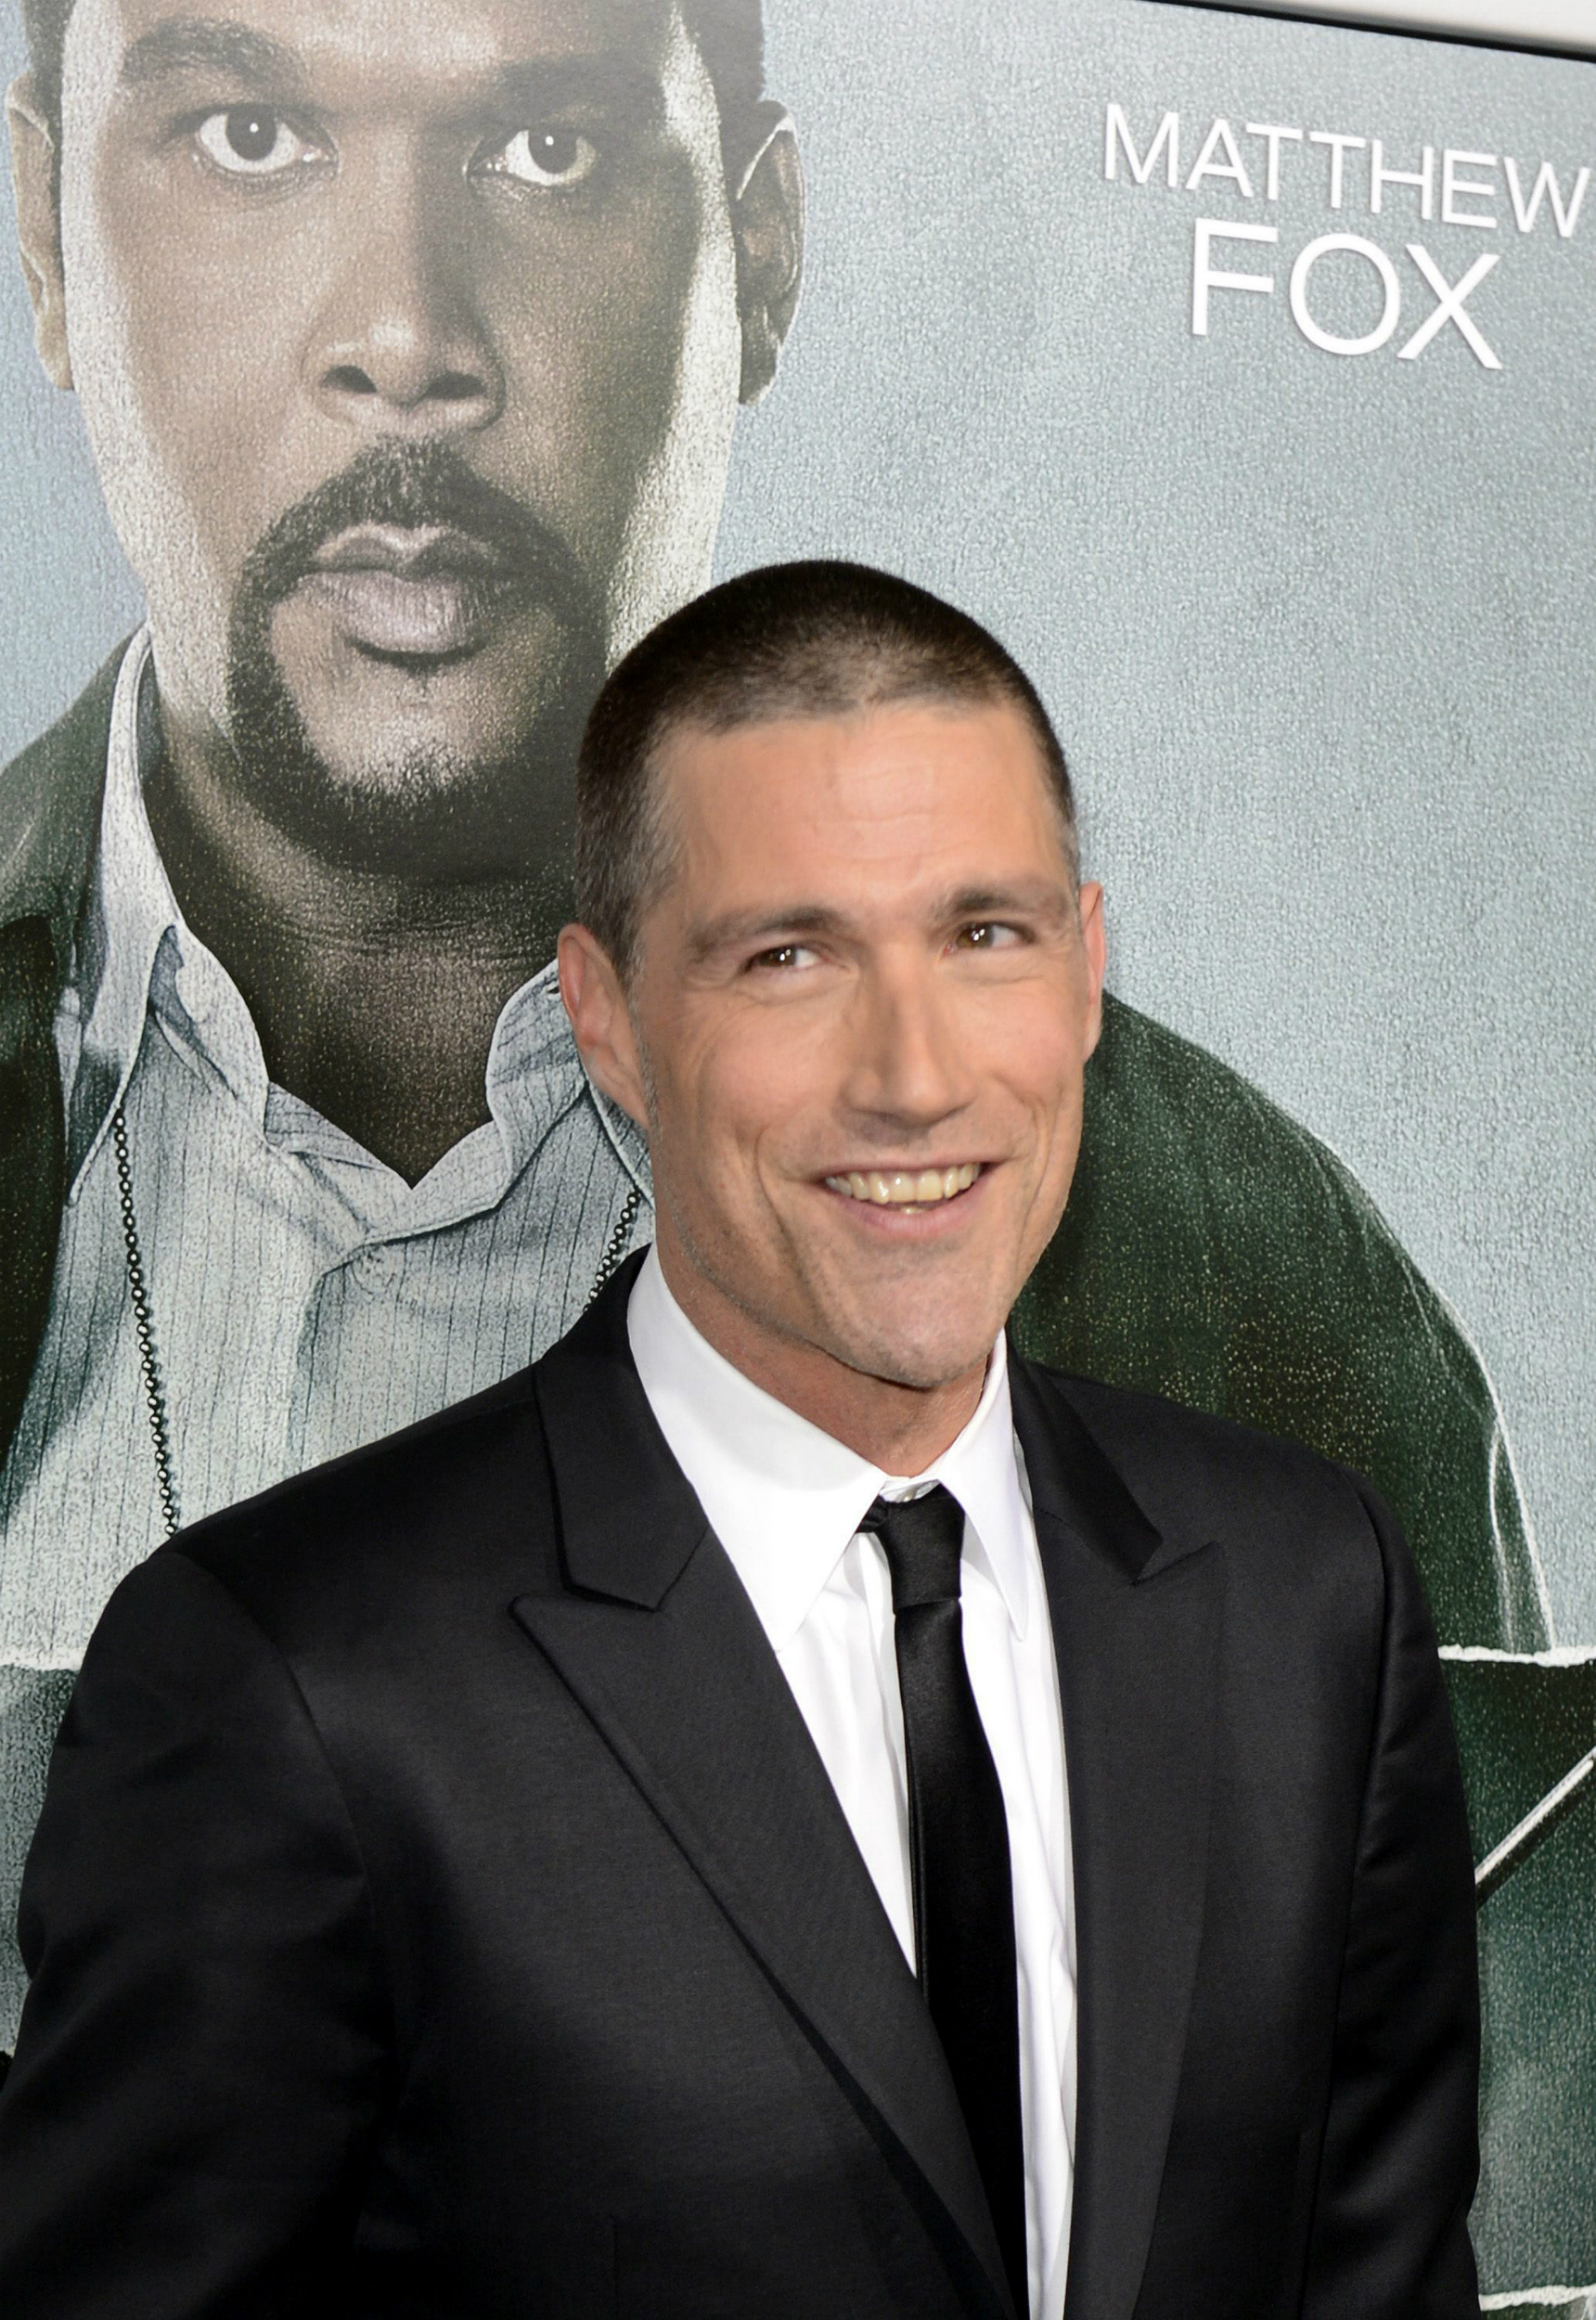 El actor estadounidense Matthew Fox en 2012, en el estreno de Alex Cross en el ArcLight Cinerama Dome en Hollywood, California (EEUU). EFE/MICHAEL NELSON